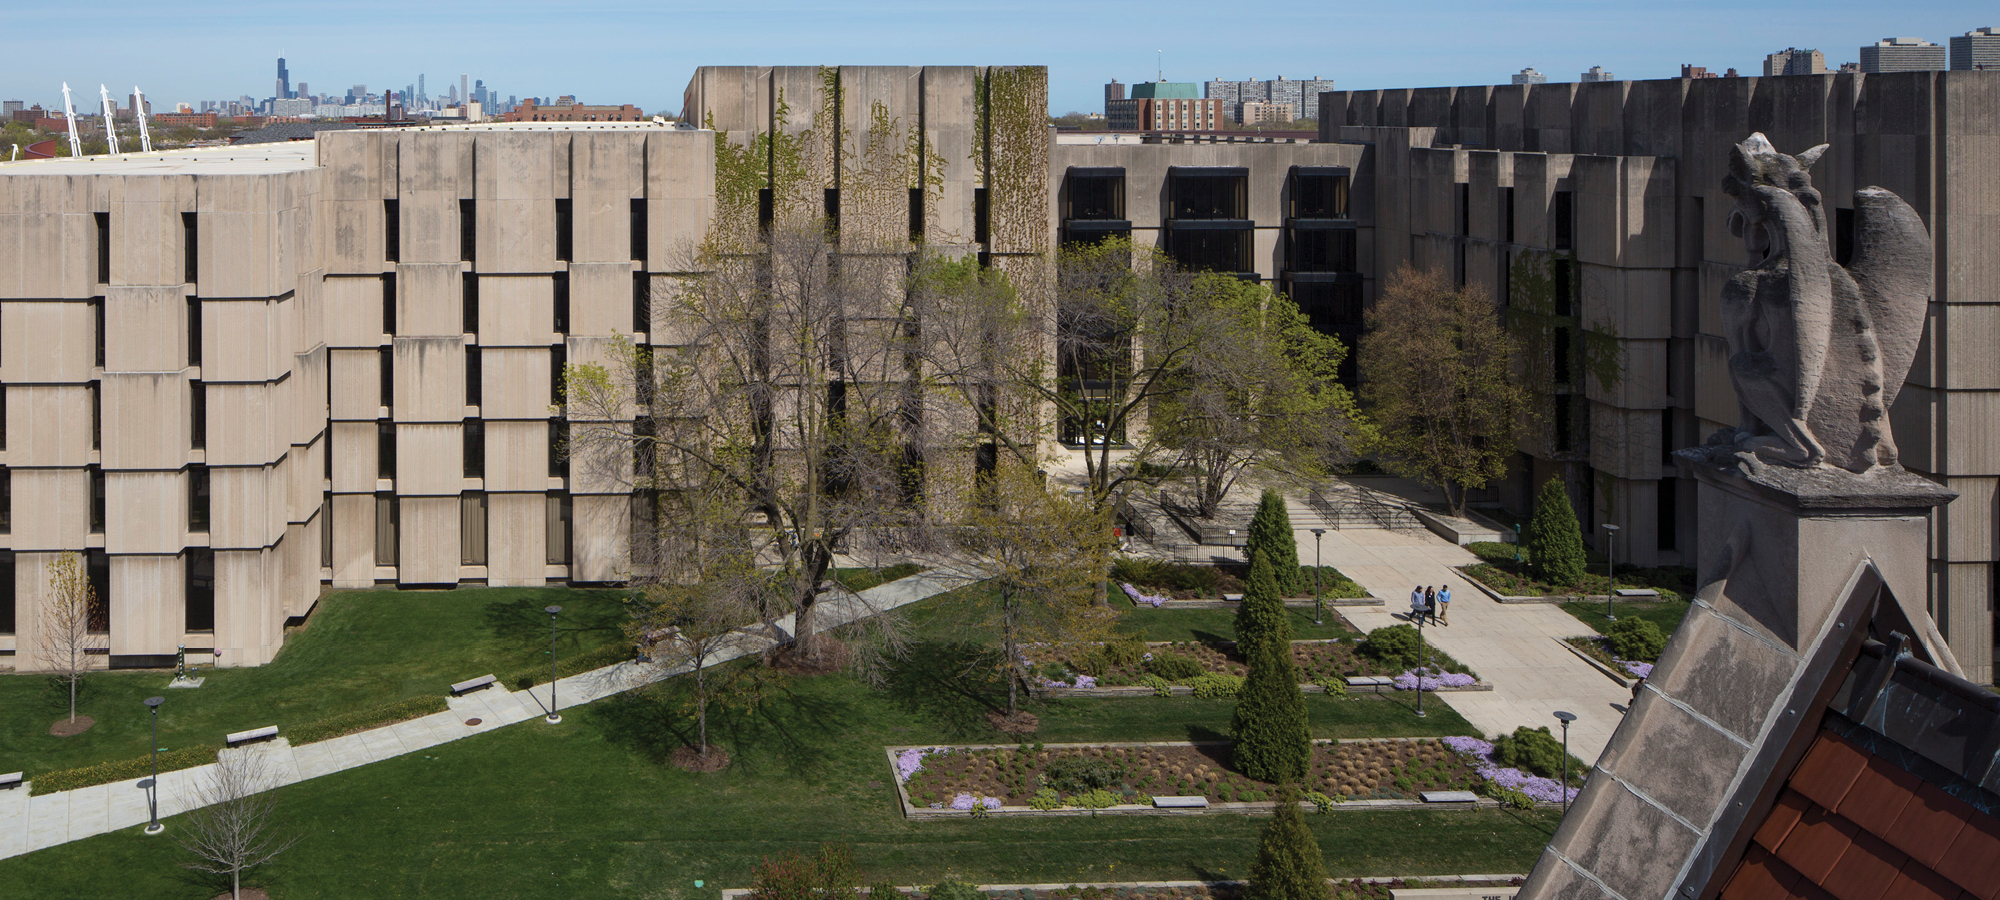 Joseph Regenstein Library at the University of Chicago